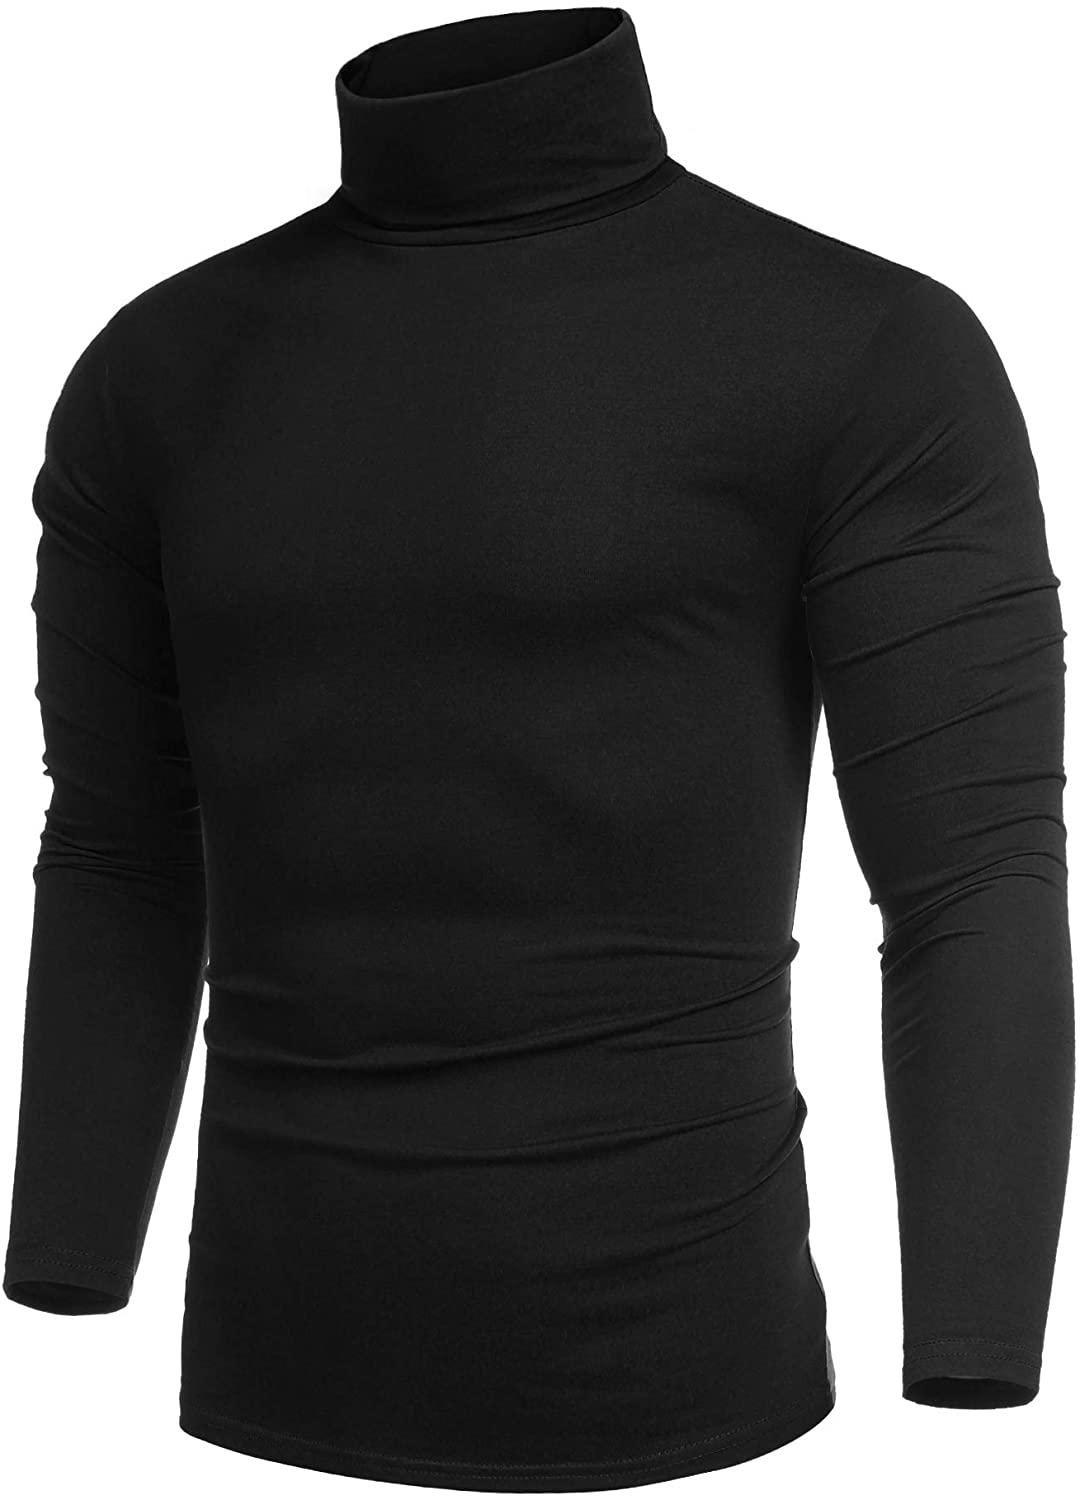 COOFANDY Men's Casual Slim Fit Turtleneck T Lightweight B Shirts Year-end annual account Max 89% OFF